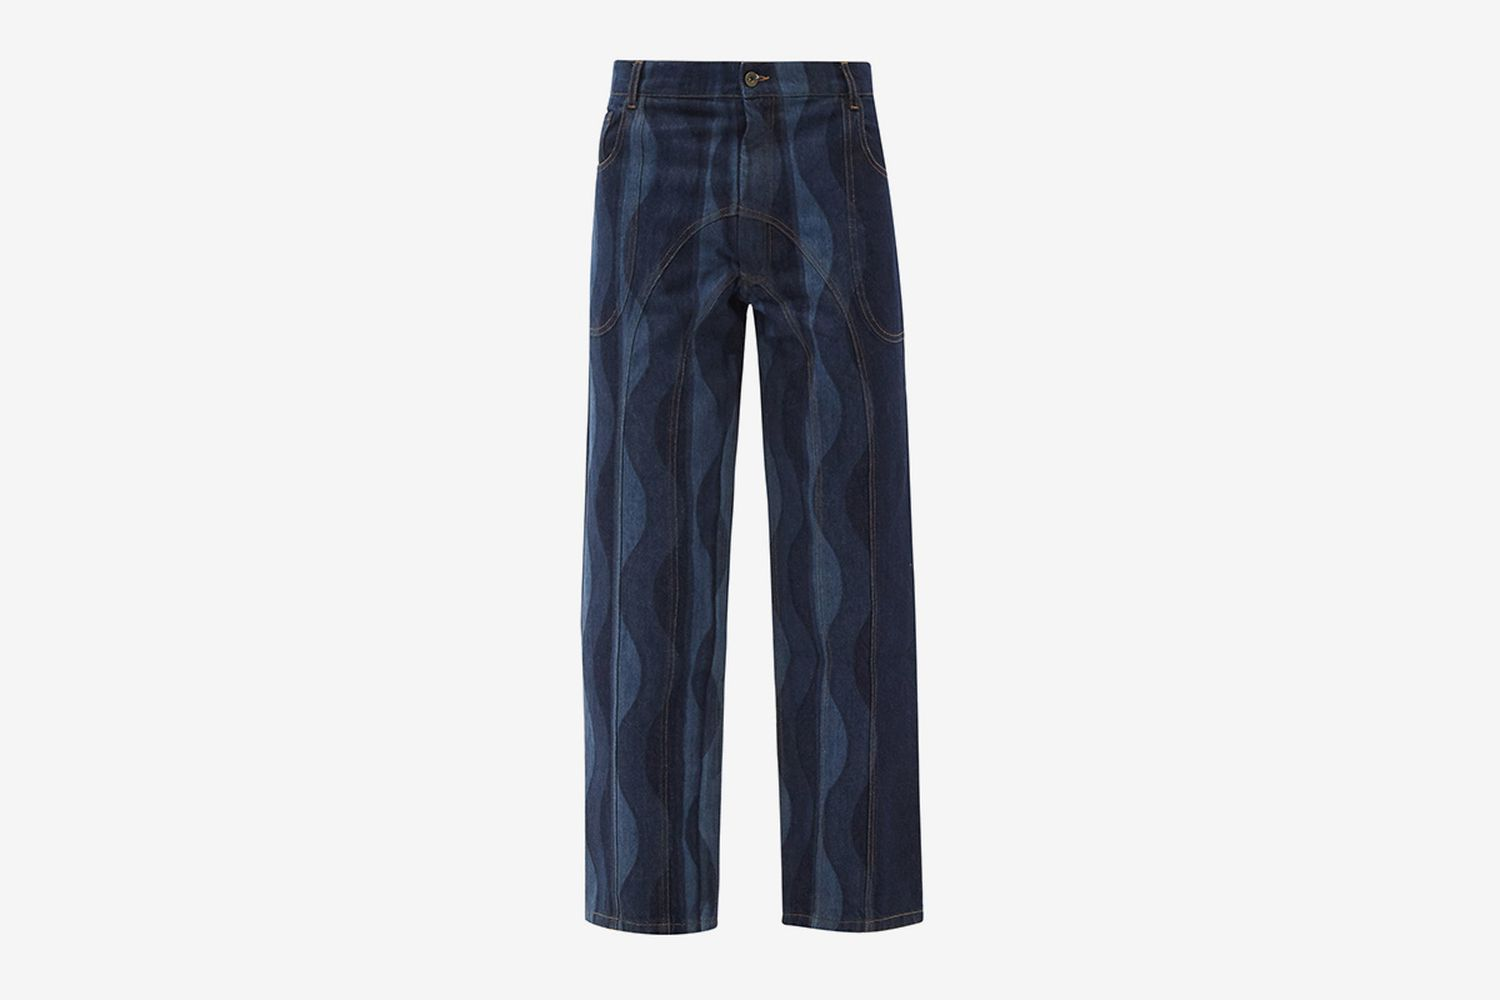 Wave-Print Recycled-Cotton Jeans